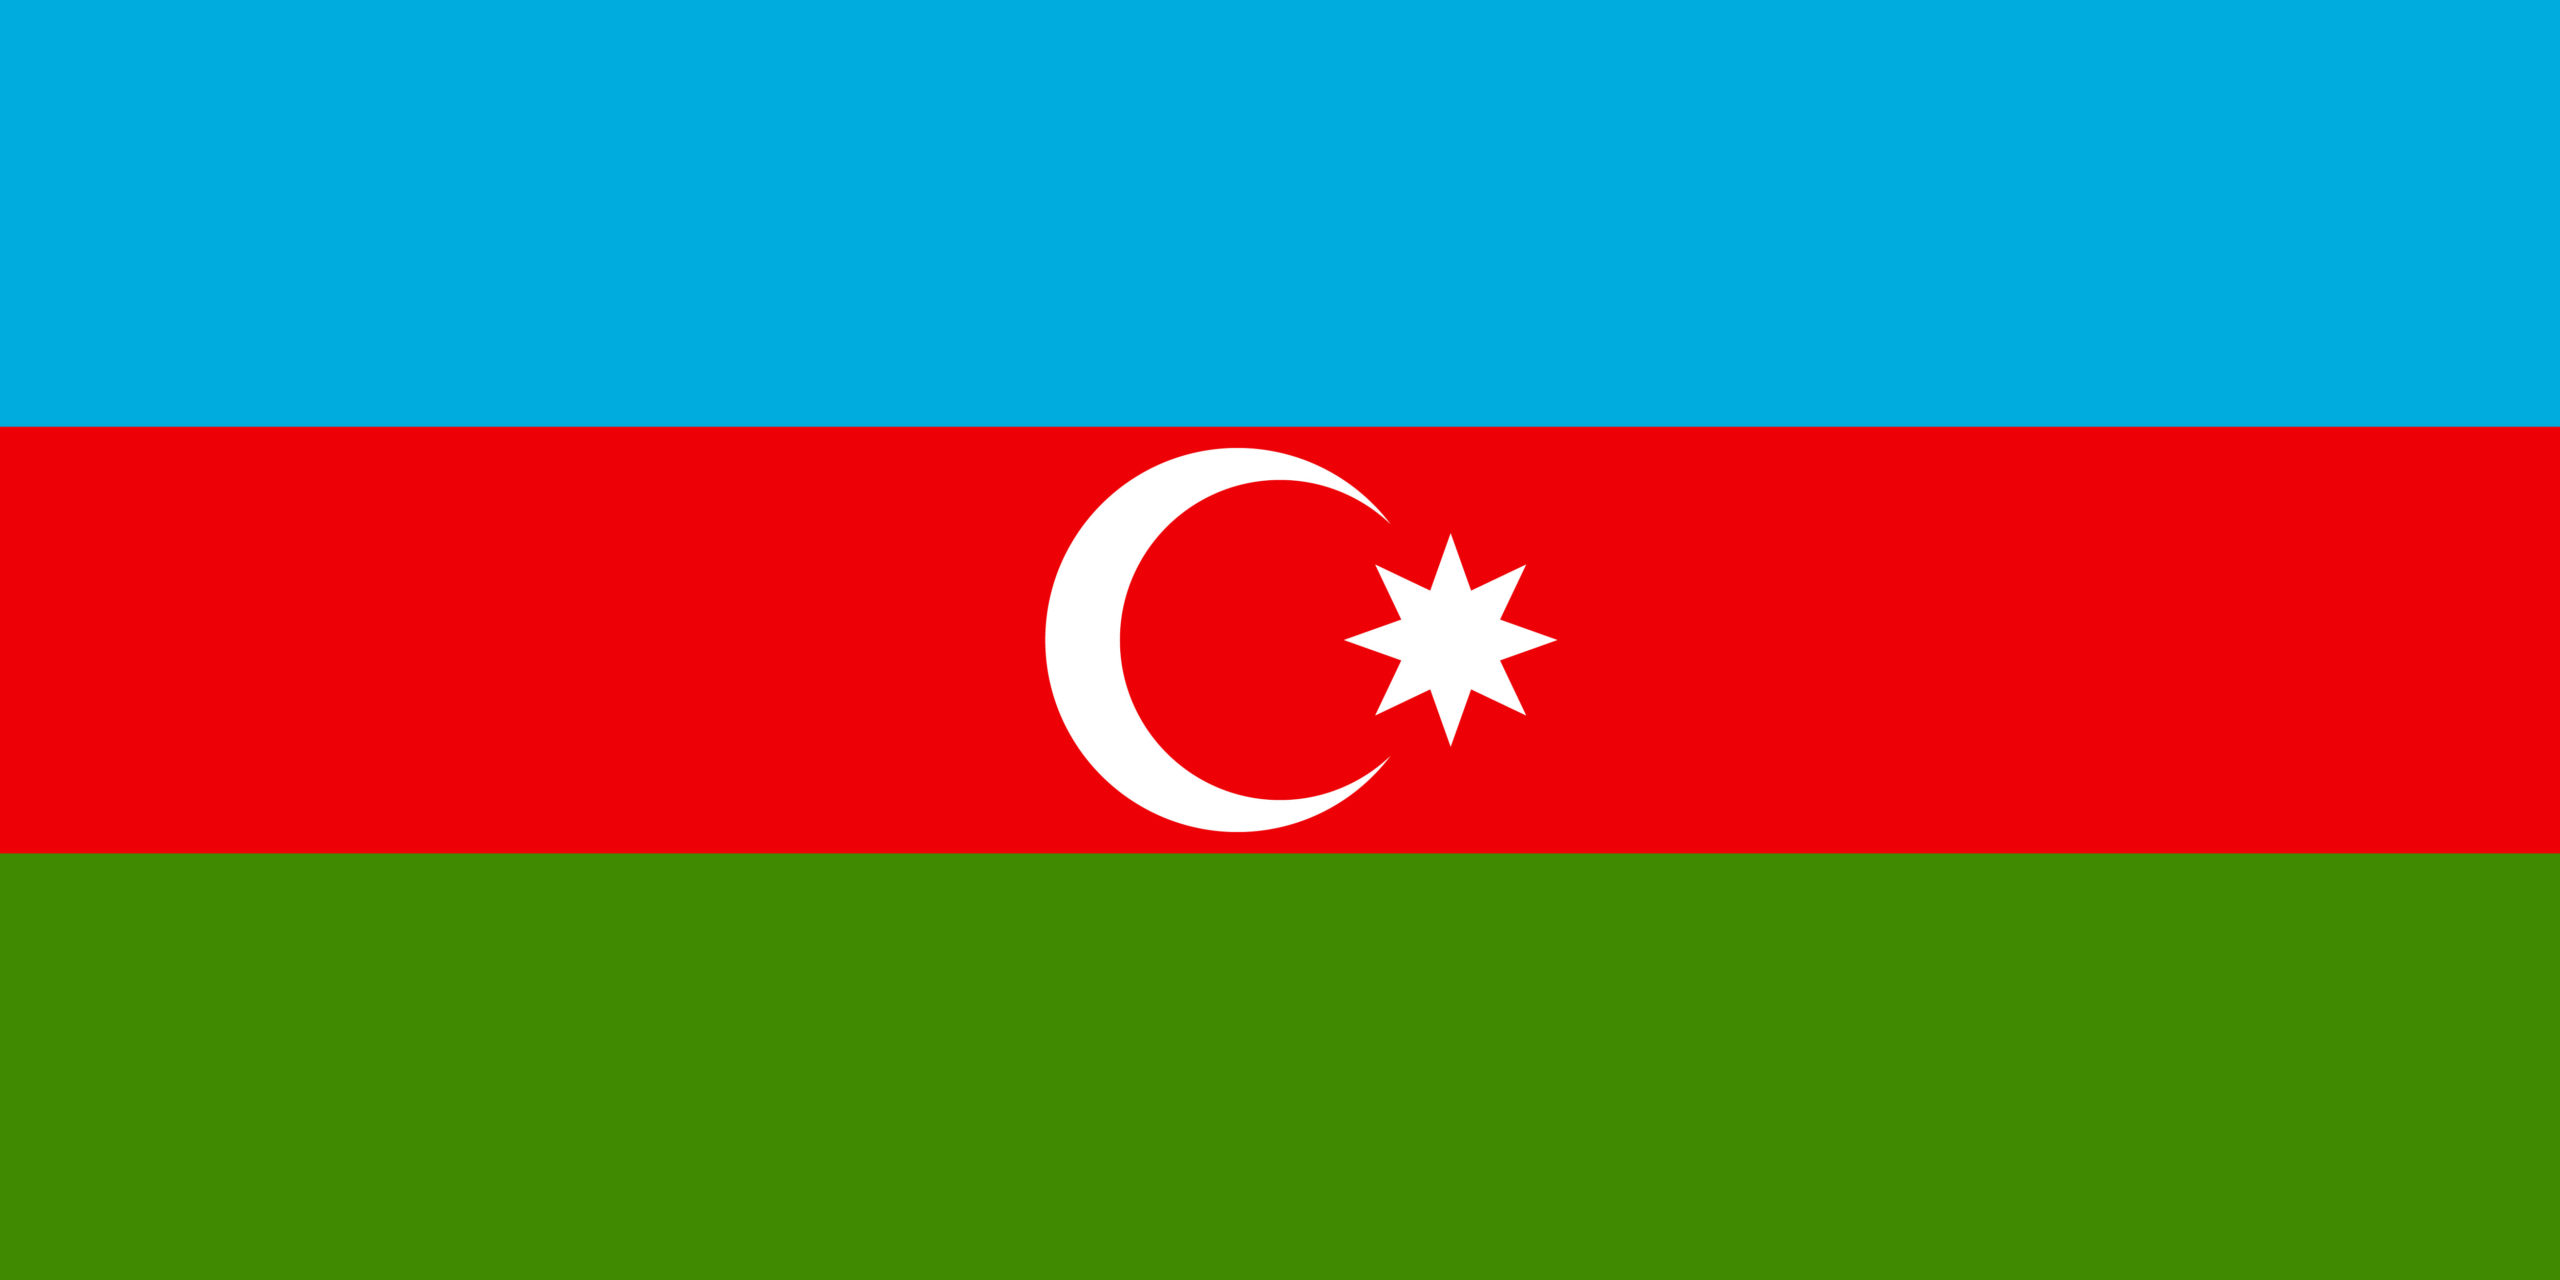 More than 5.3 million Azerbaijanis vote in parliamentary elections on Sunday